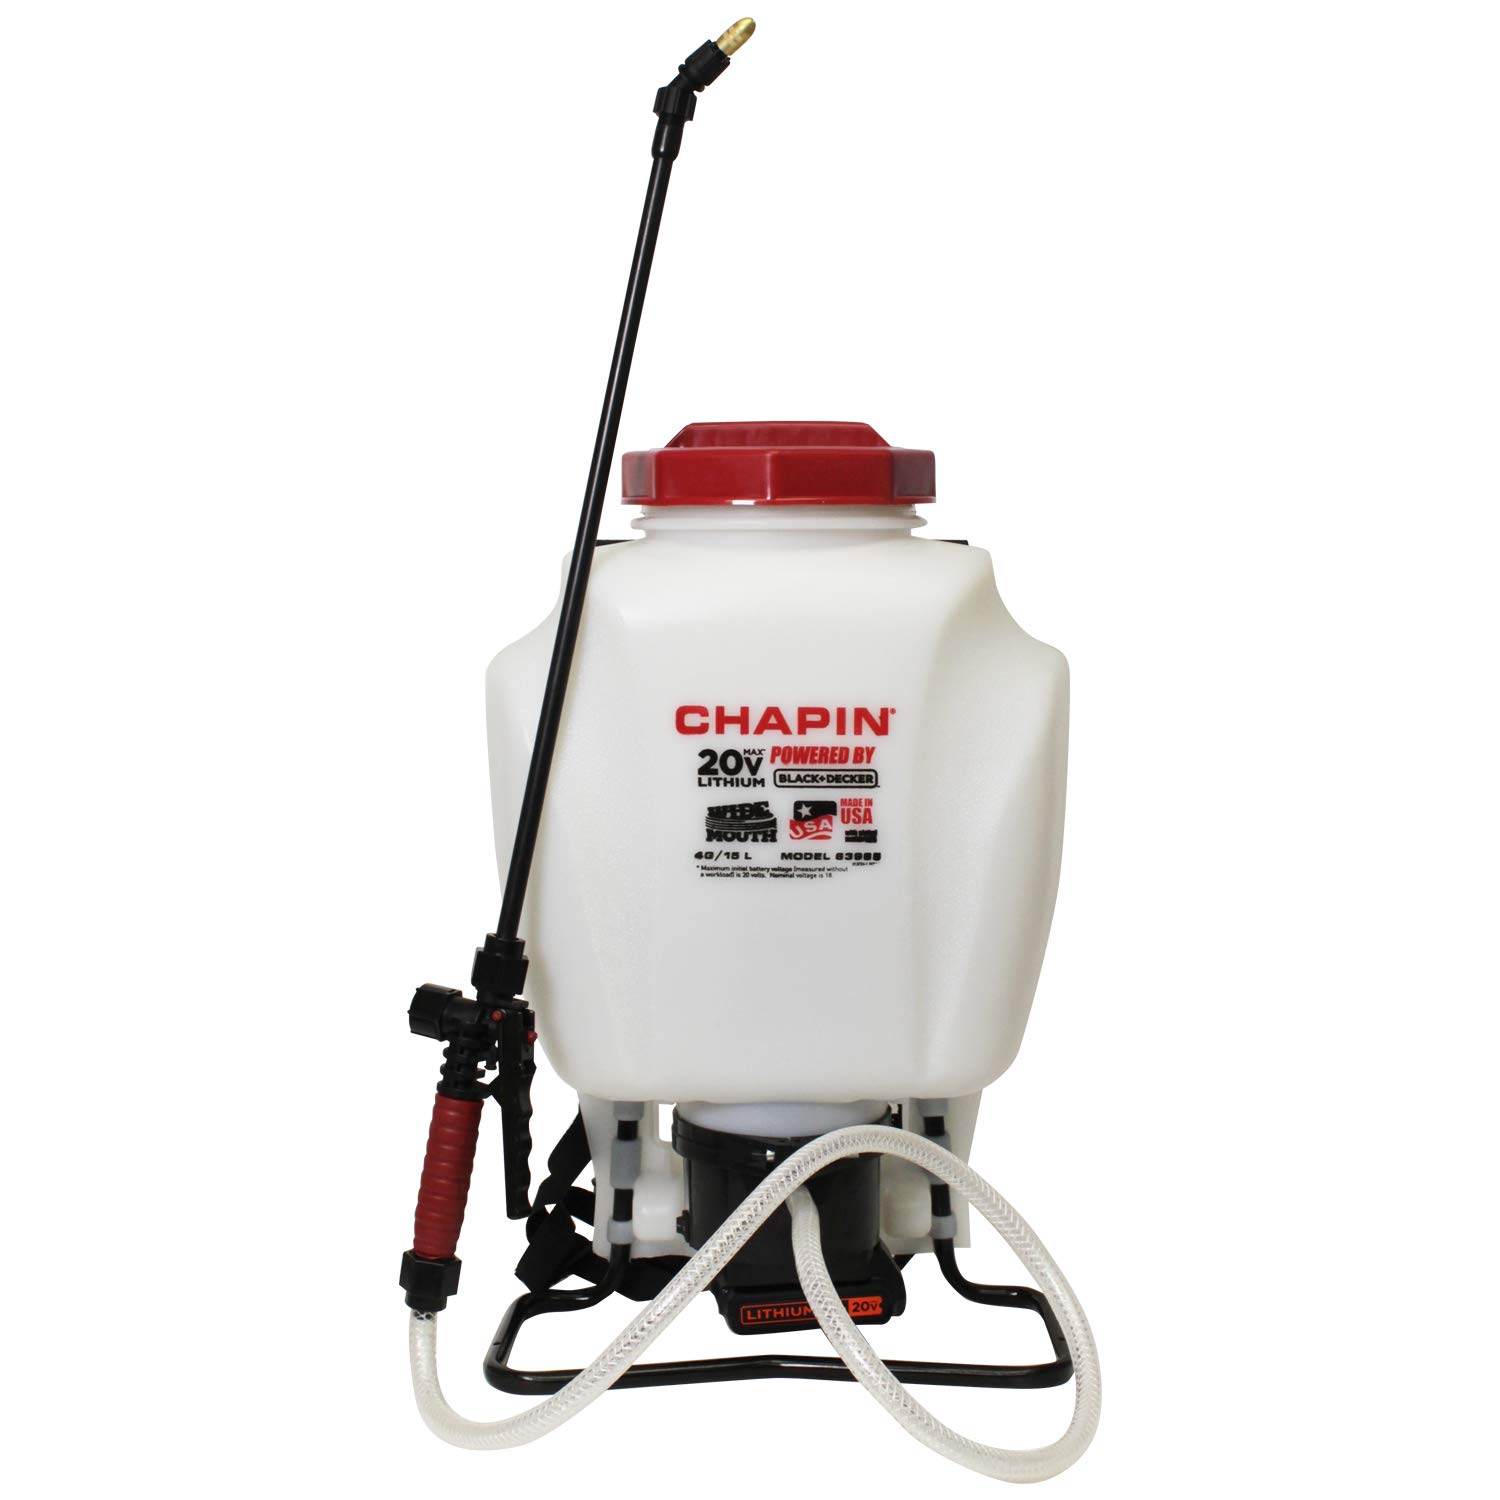 Chapin International 63985 Black & Decker Backpack Sprayer, 4 gal Translucent White